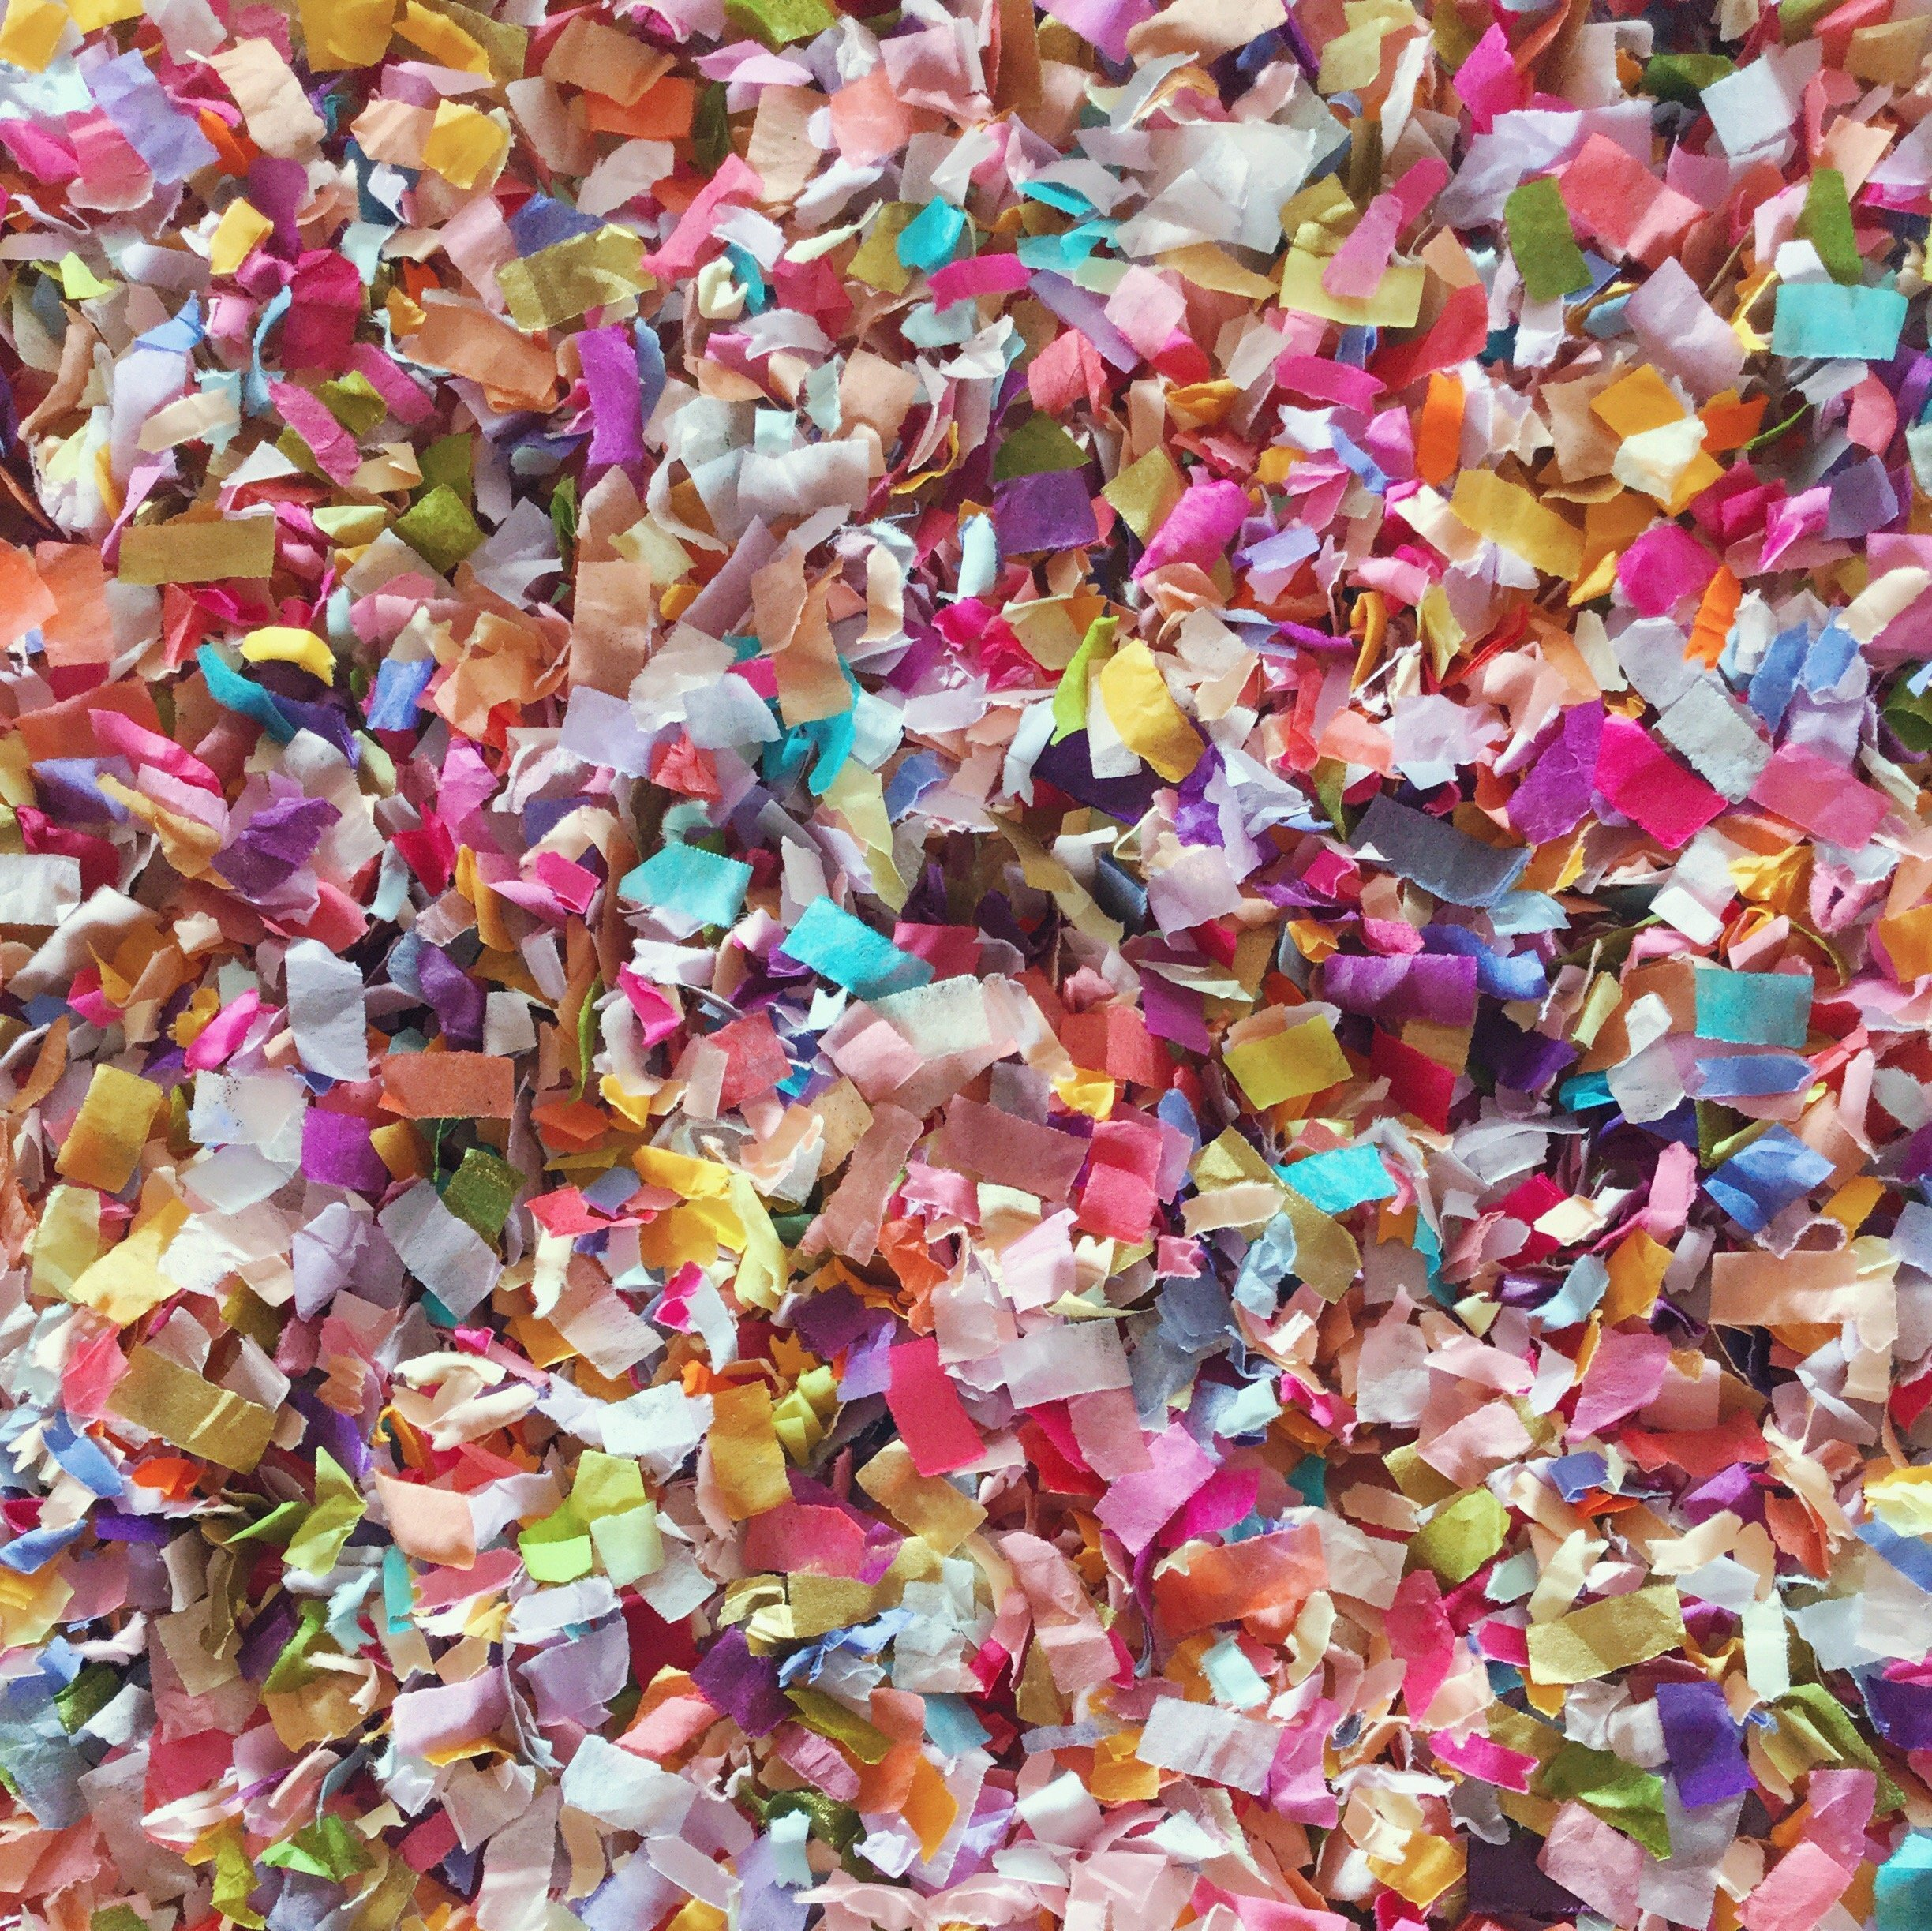 Flower Garden Confetti Mix Multi-colored Biodegradable Floral Wedding Party Decorations Decor Throwing Send Off InsideMyNest (25 Handfuls) by Inside My Nest